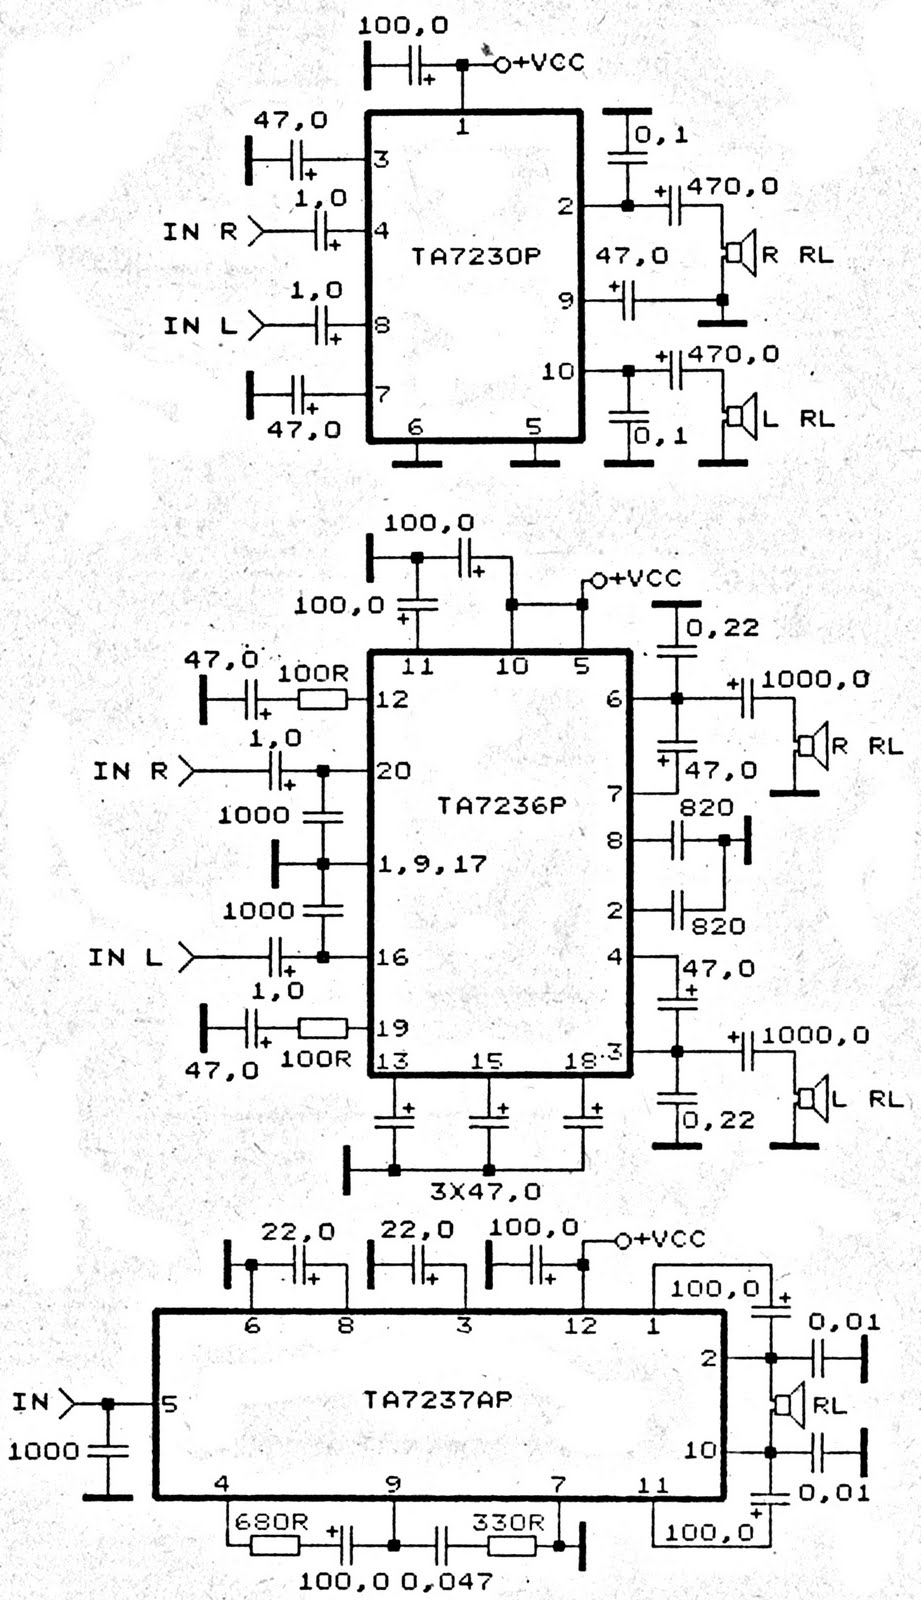 TA7230P, TA7236P, TA7237AP amplifier schematic - Power Amplifier